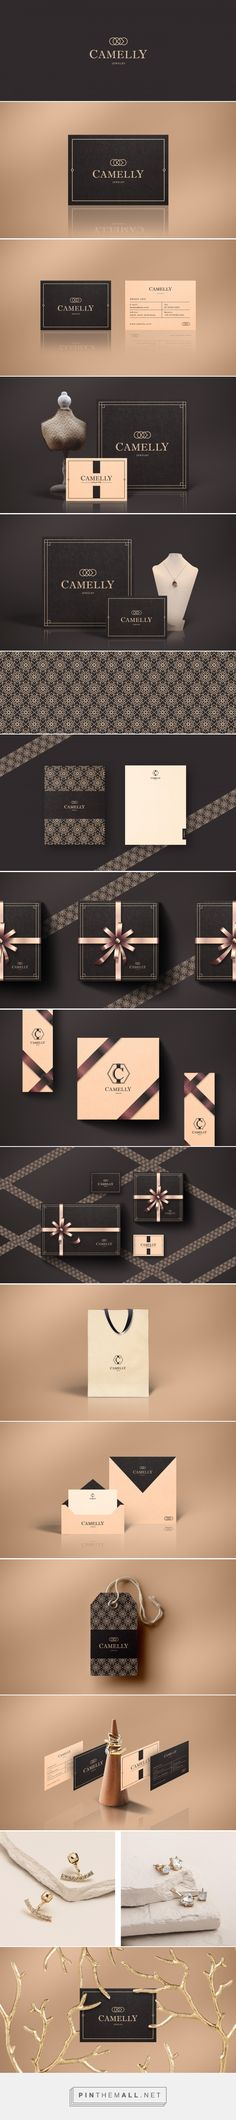 design logo luxury design design studio design marketing design dosei design porter of luxury design luxury design Design Logo, Brand Identity Design, Design Agency, Branding Design, Web Design, Graphic Design, Design Trends, Cool Packaging, Jewelry Packaging